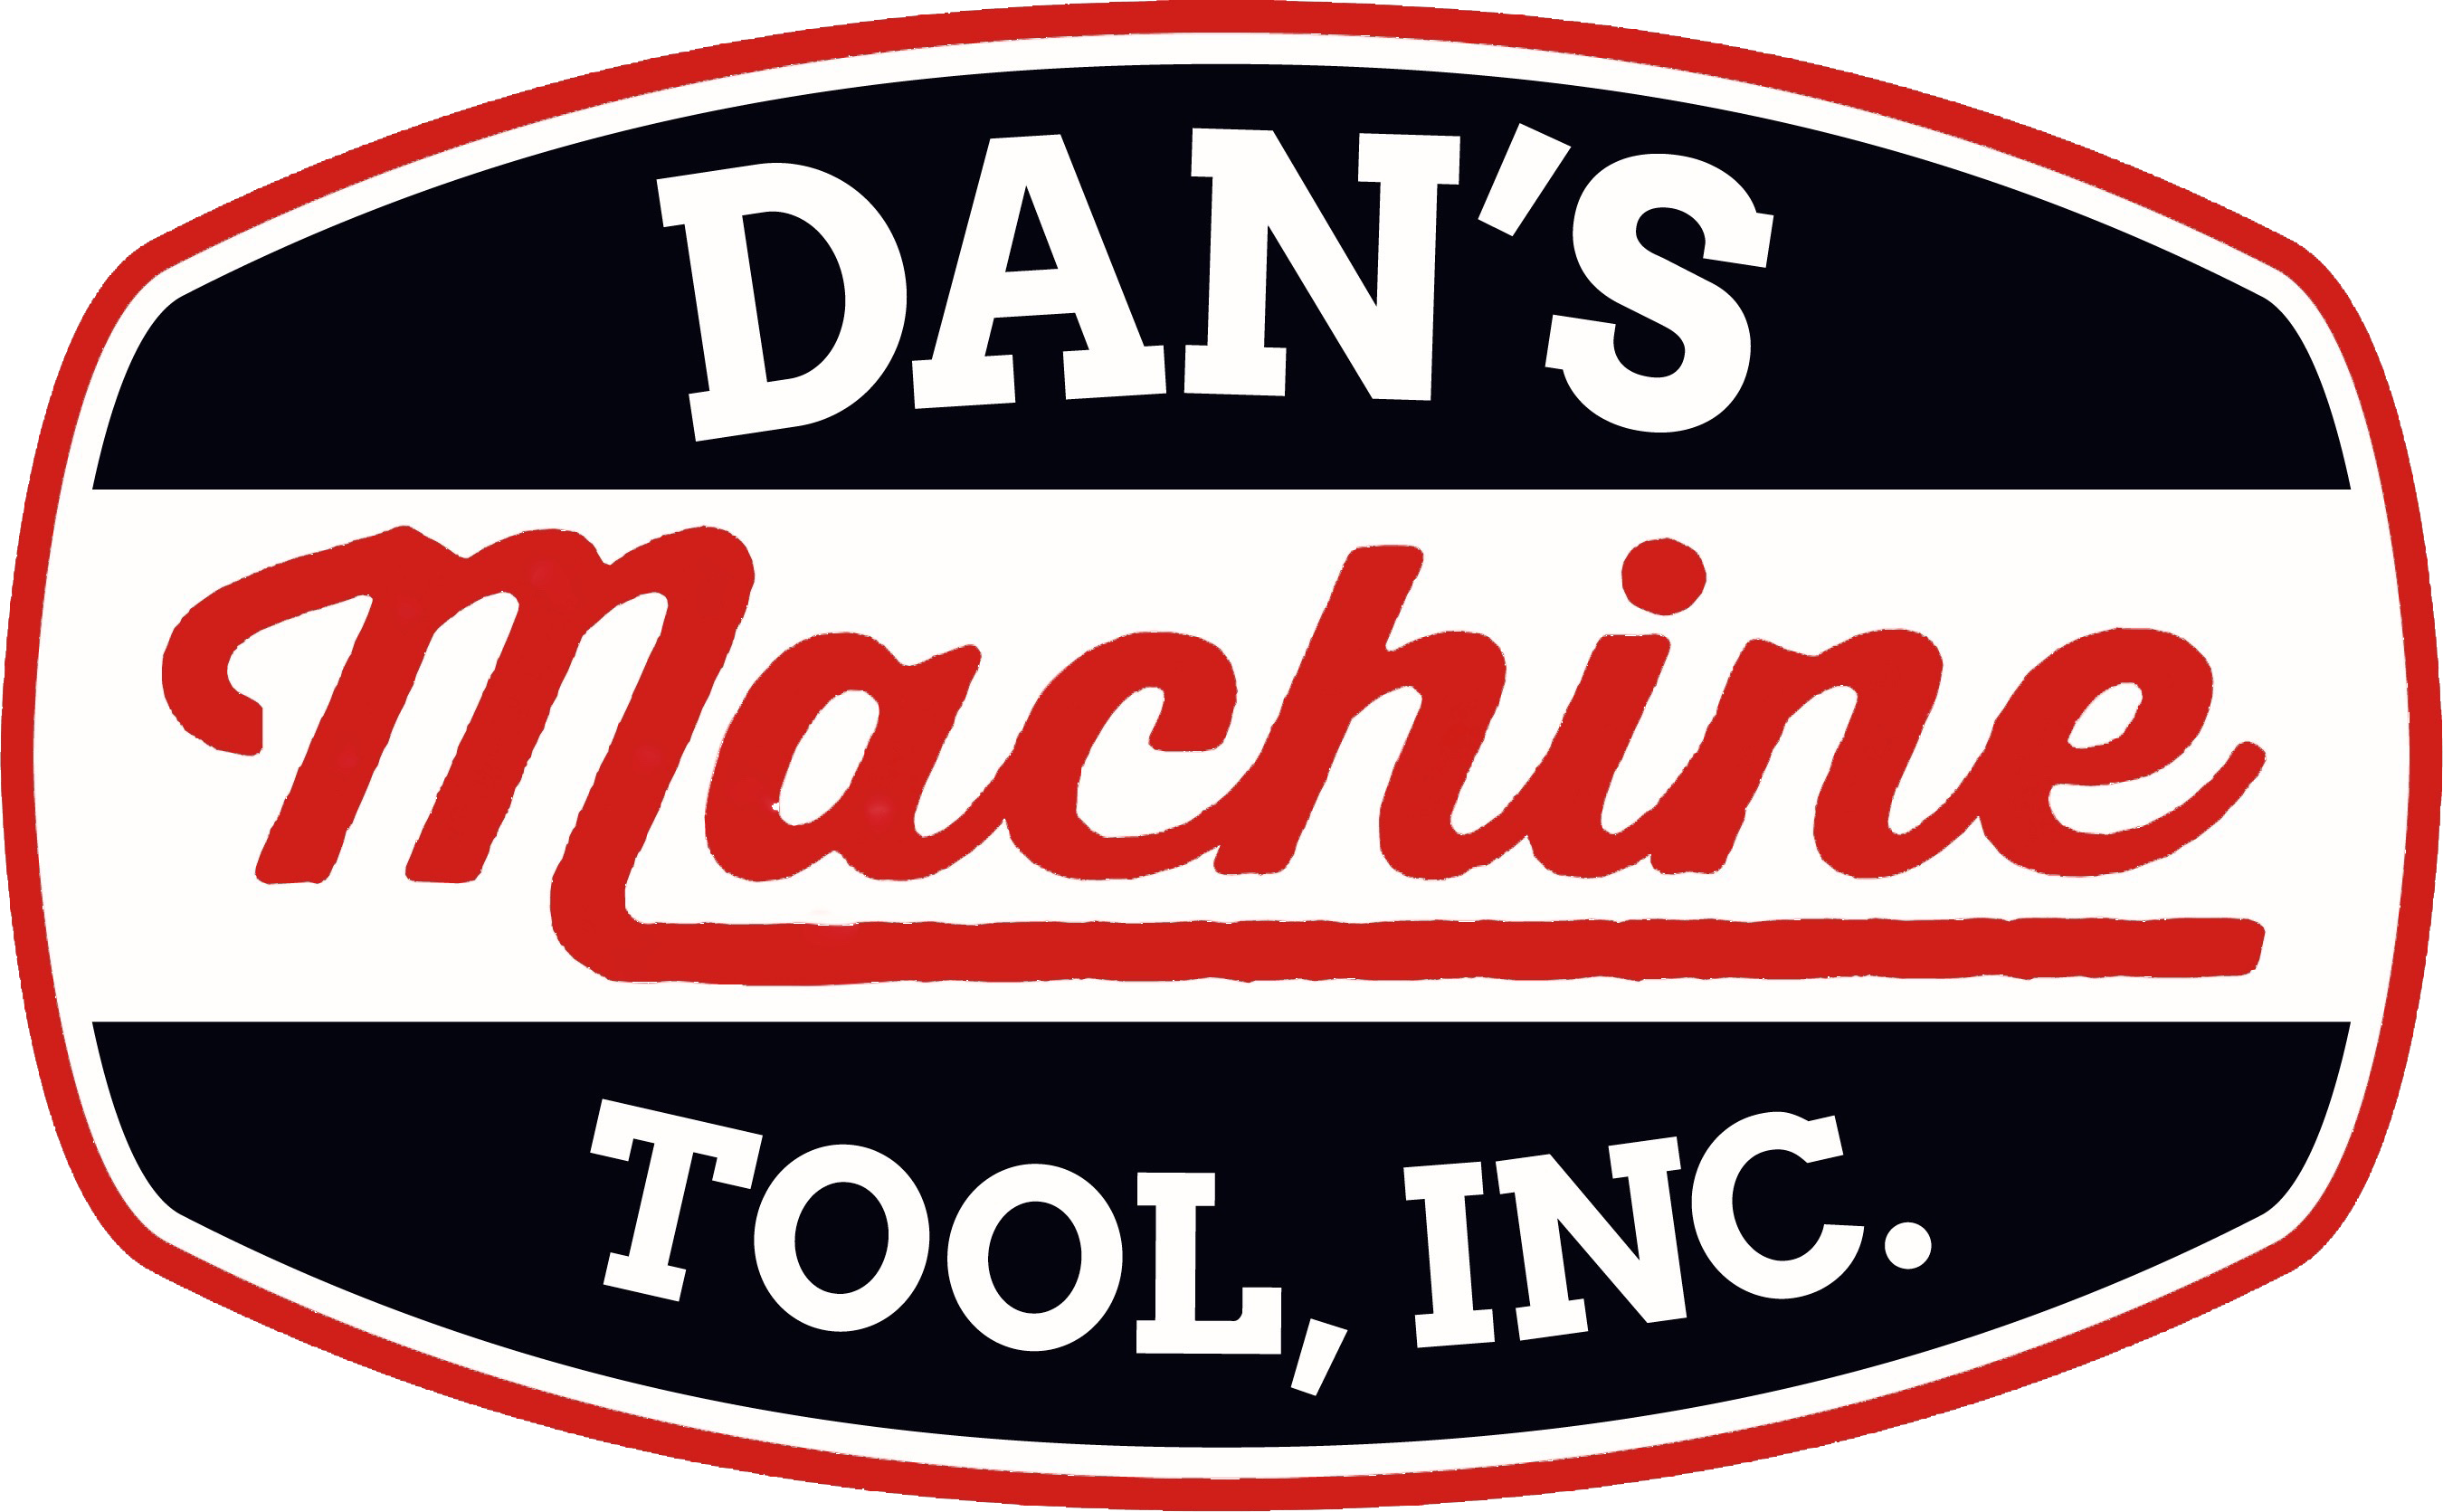 Dan's Machine Tool, Inc. | Machinery Sales & Service, Delivery & Installation, Repair & Rebuilding